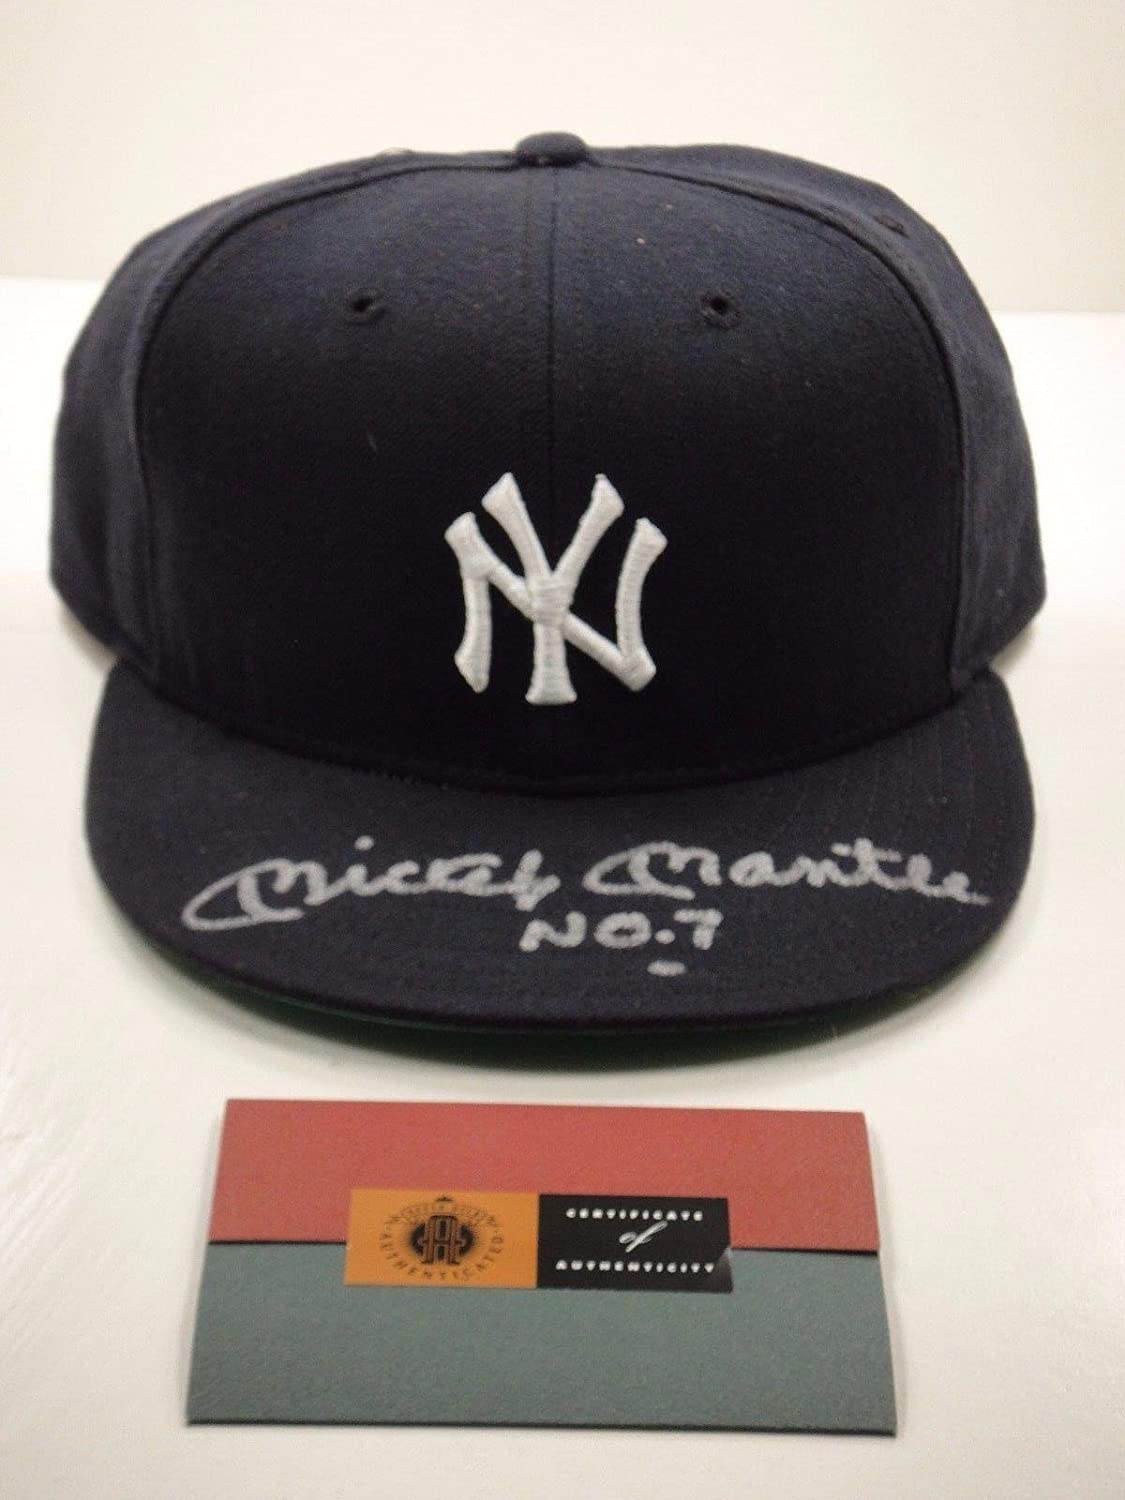 b17be00f25bb6 7 Authenticated Signed Autograph Ny Yankees Hat - Upper Deck Certified -  Autographed Hats at Amazon s Sports Collectibles Store